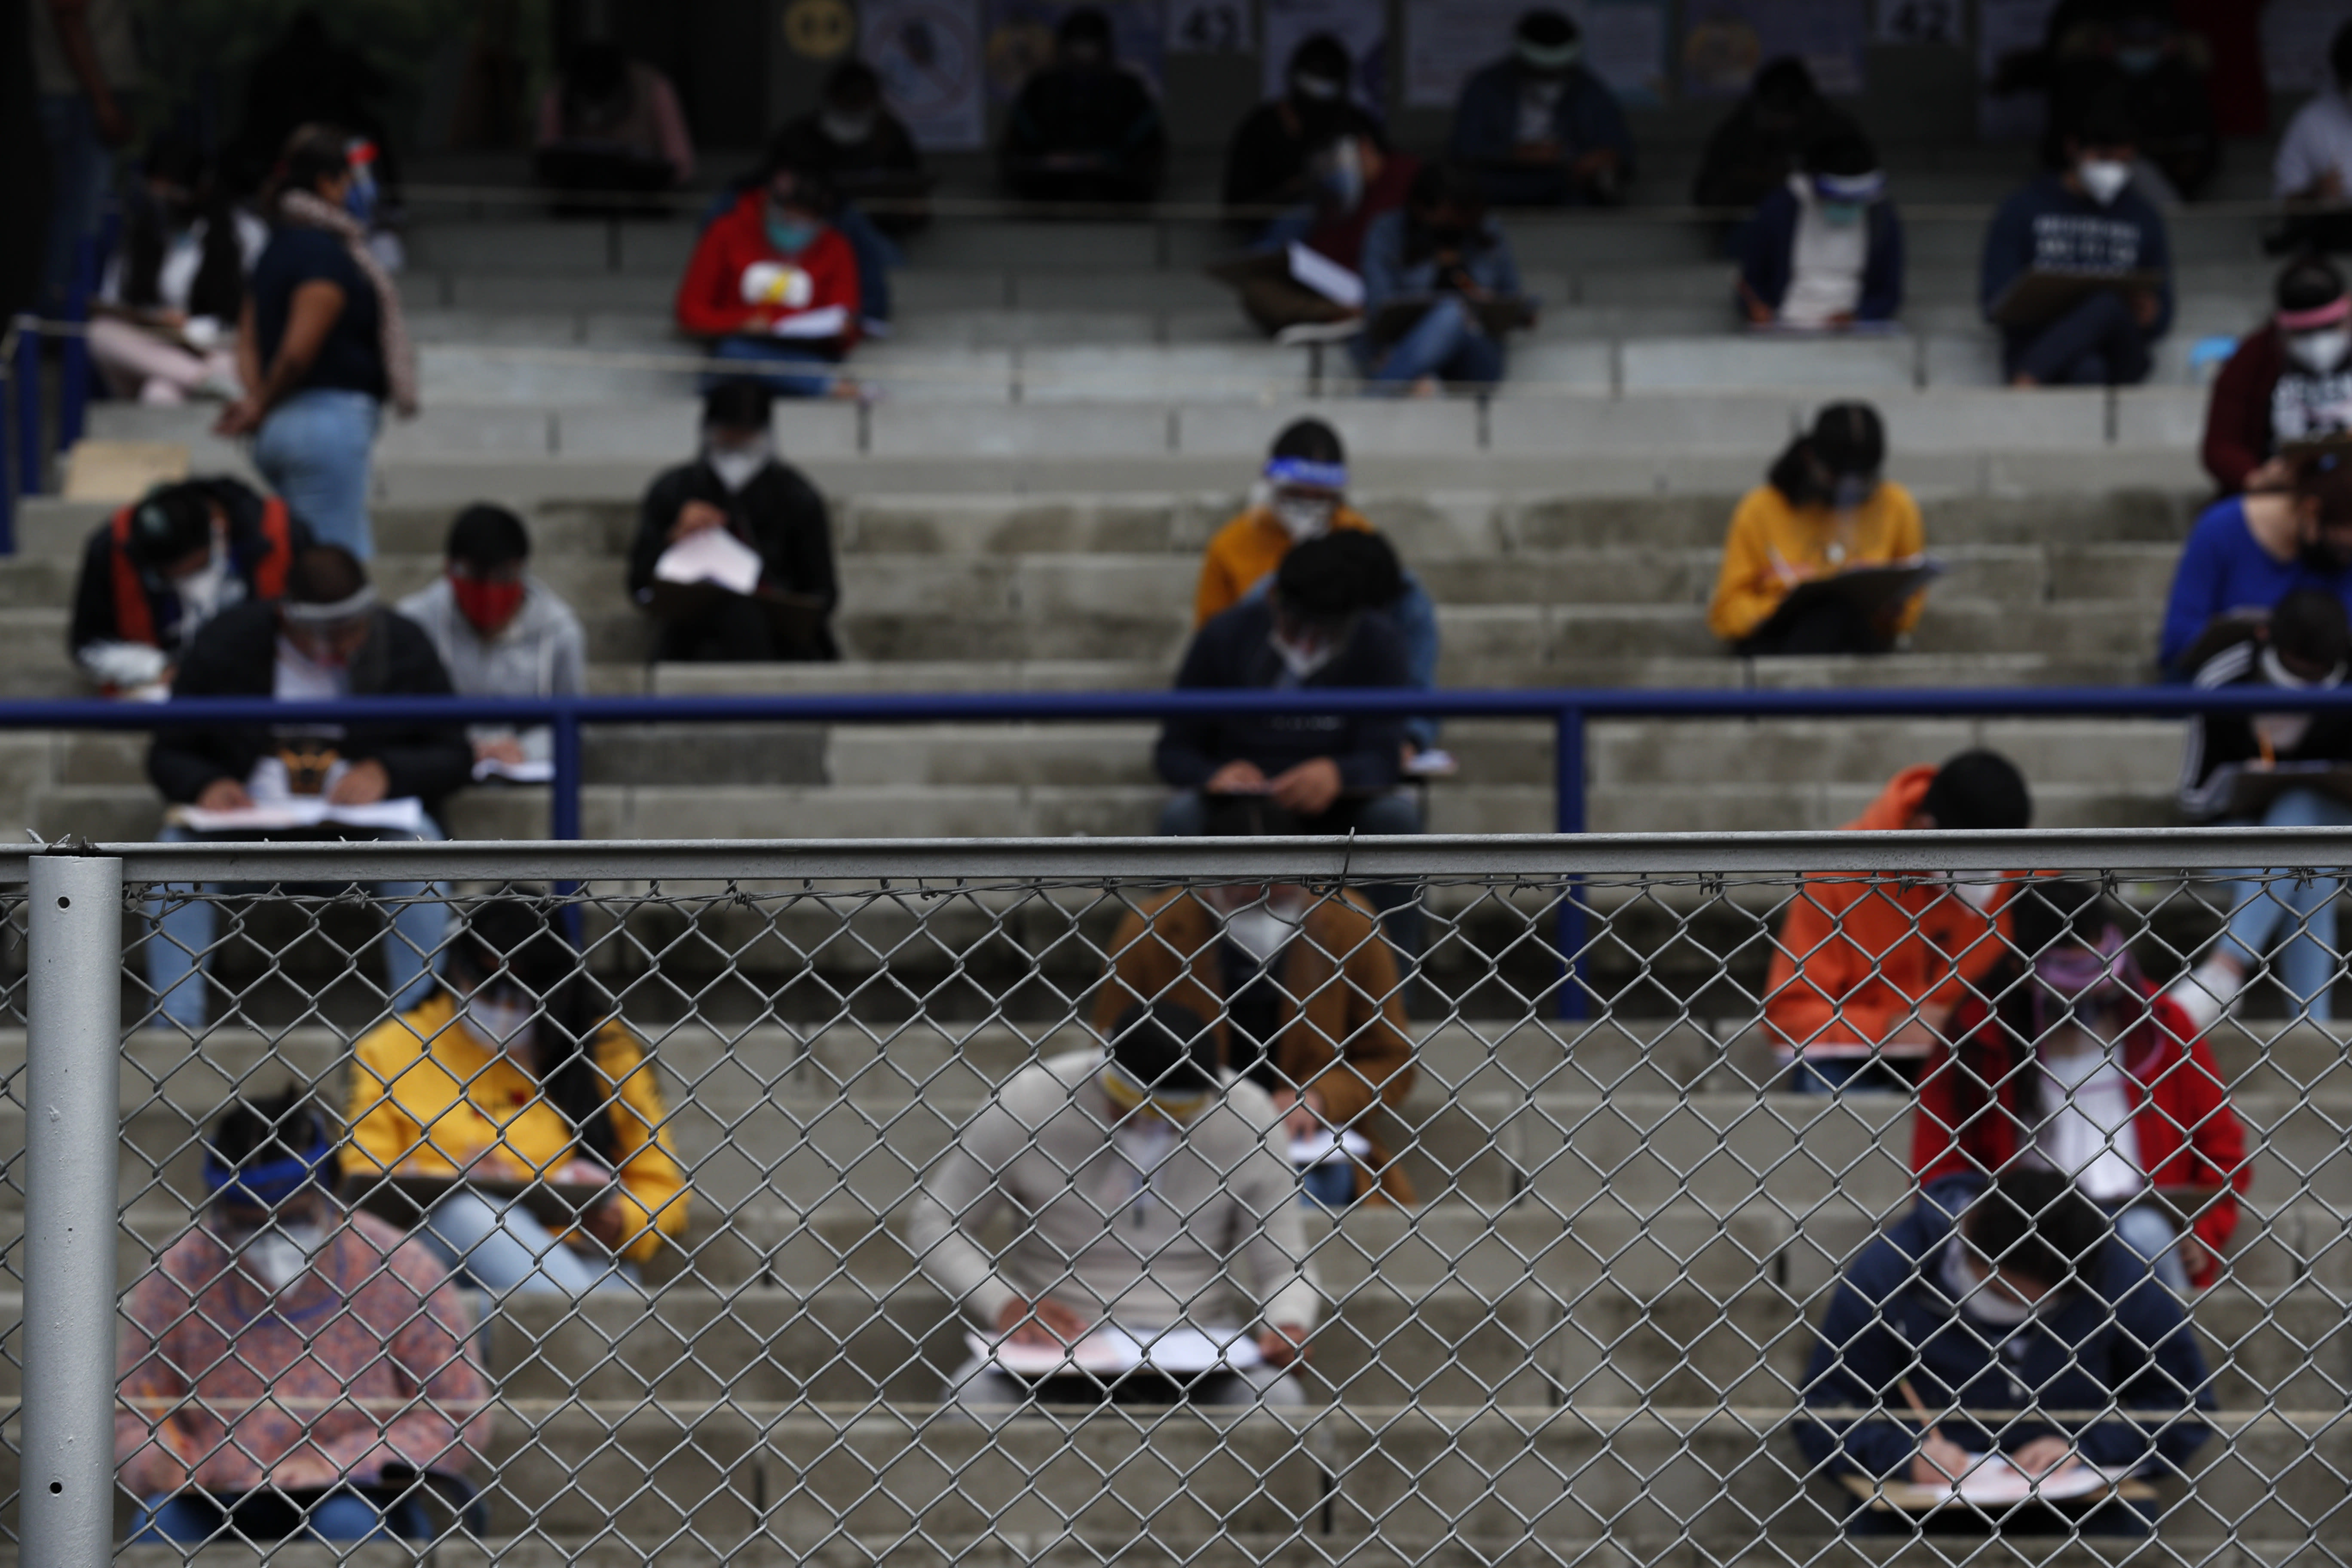 Prospective students are seen through a fence as they take the entrance exam for Mexico's National Autonomous University in the stands of University Olympic Stadium, amidst the ongoing coronavirus pandemic, in Mexico City, Wednesday, Aug. 19, 2020. More than 2,000 hopefuls registered to take the exam at the stadium, where it was being offered for the first time, and more than 80,000 aspirants were registered nationwide to take the exam. (AP Photo/Rebecca Blackwell)